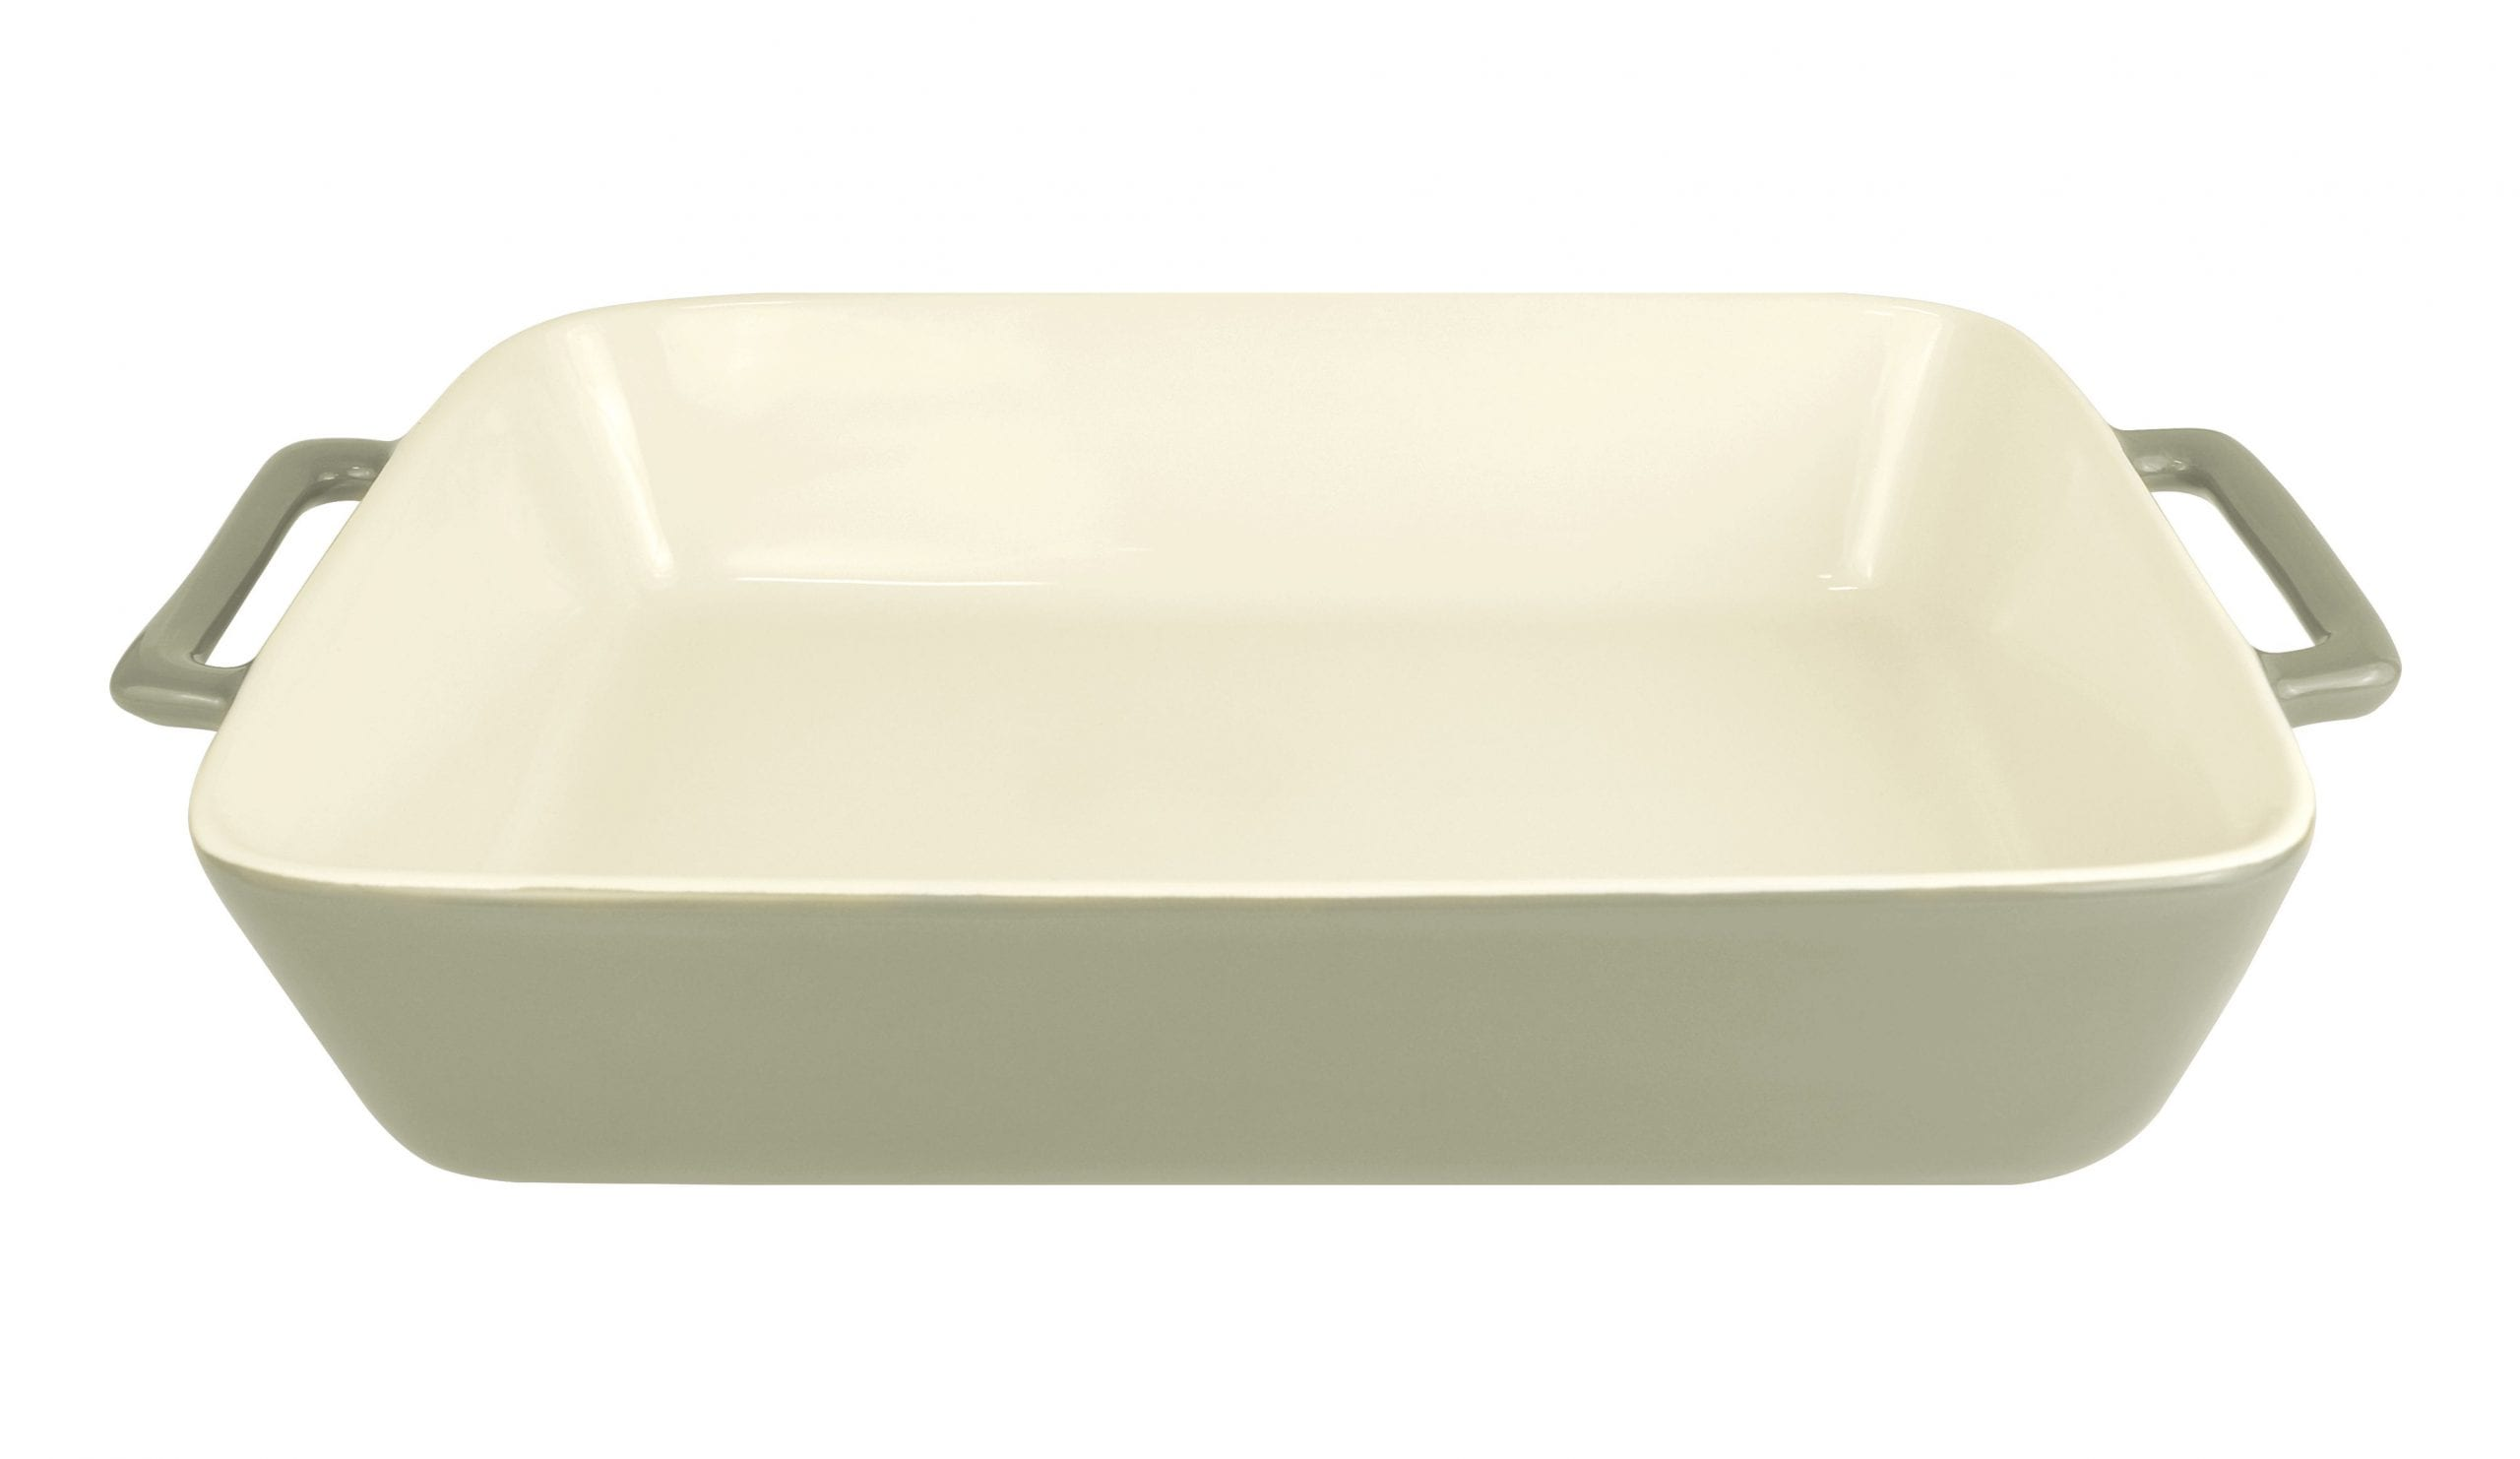 Le Regalo Stoneware Baking Dish with Handles 1 scaled